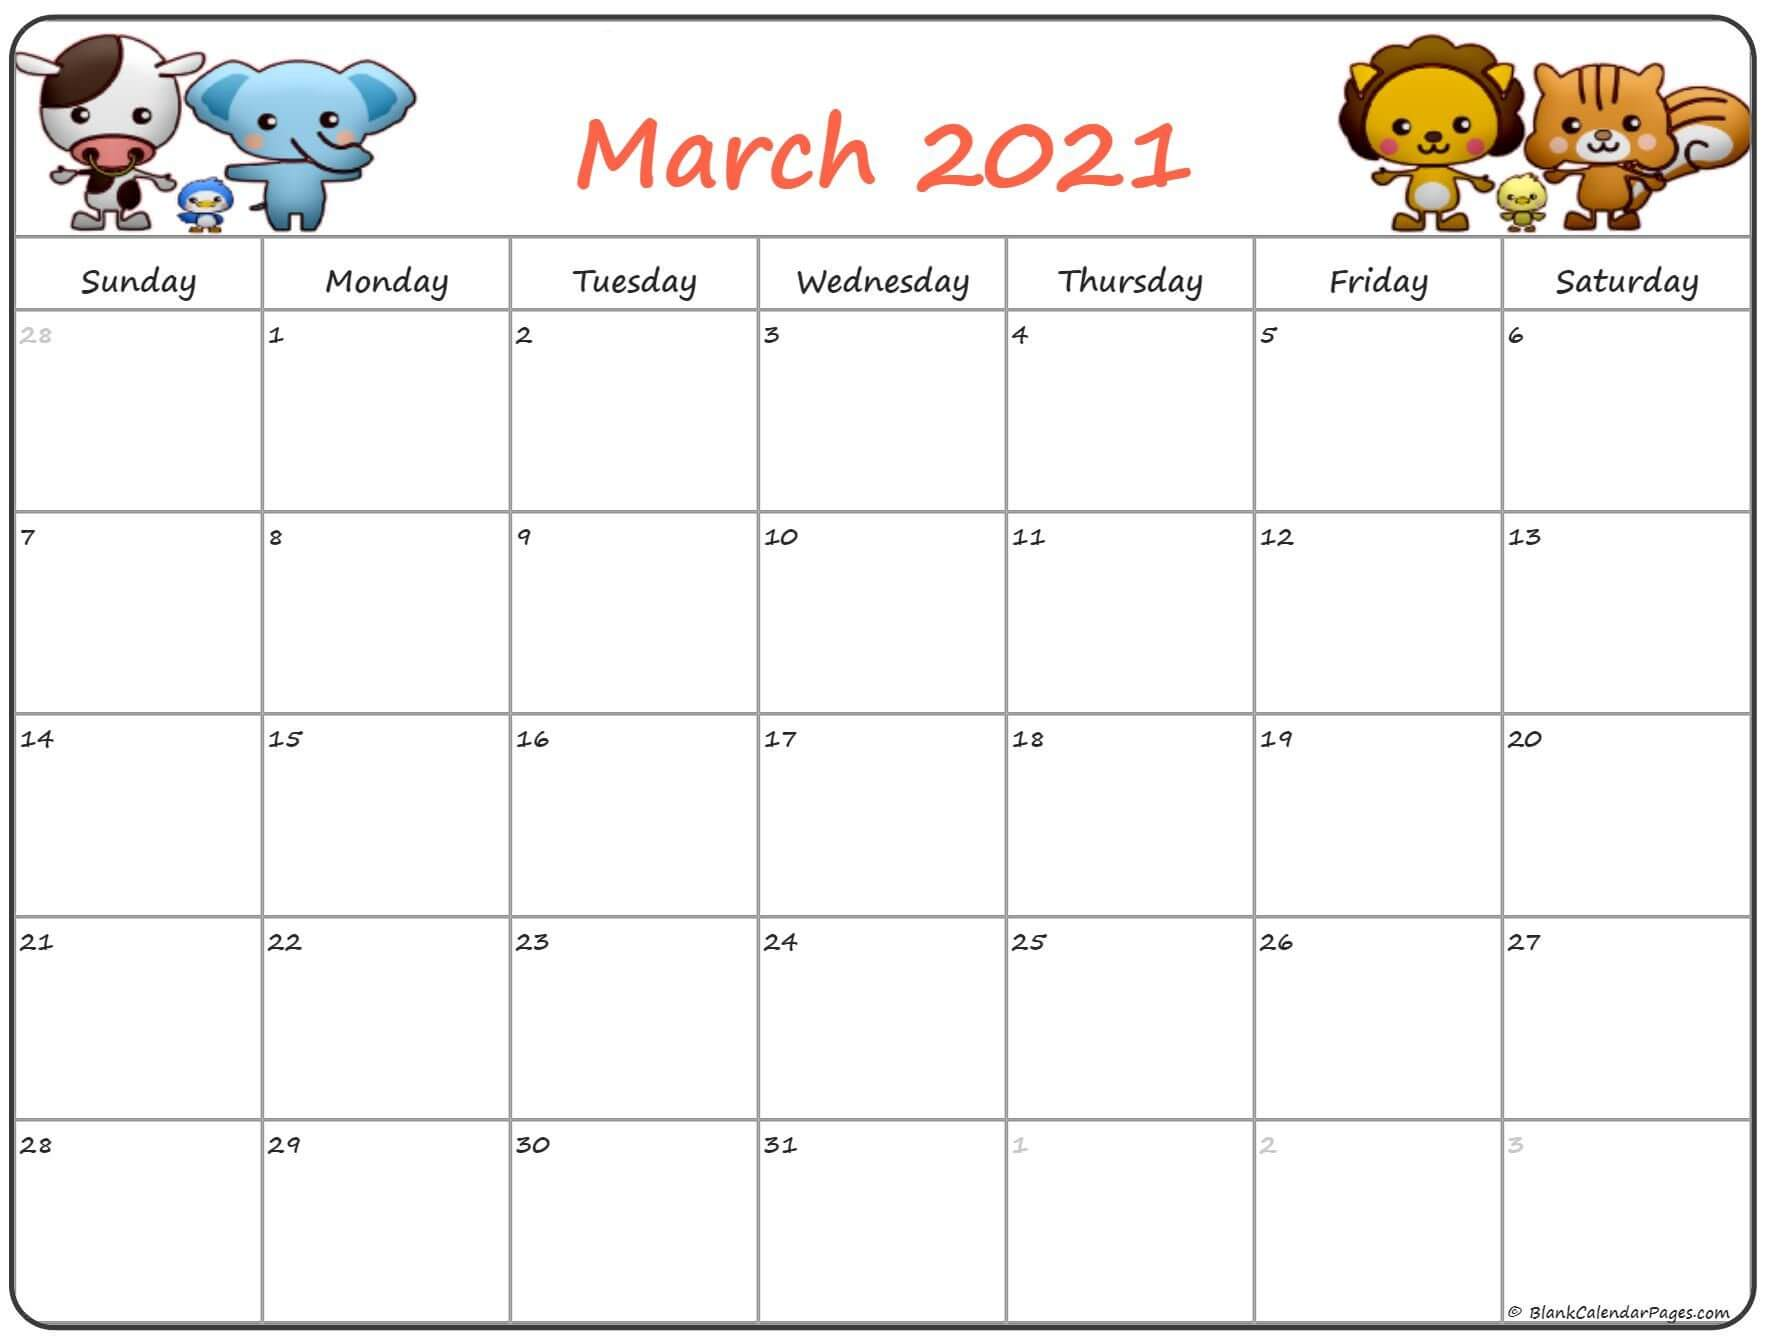 Cute March 2021 Calendar For Kids